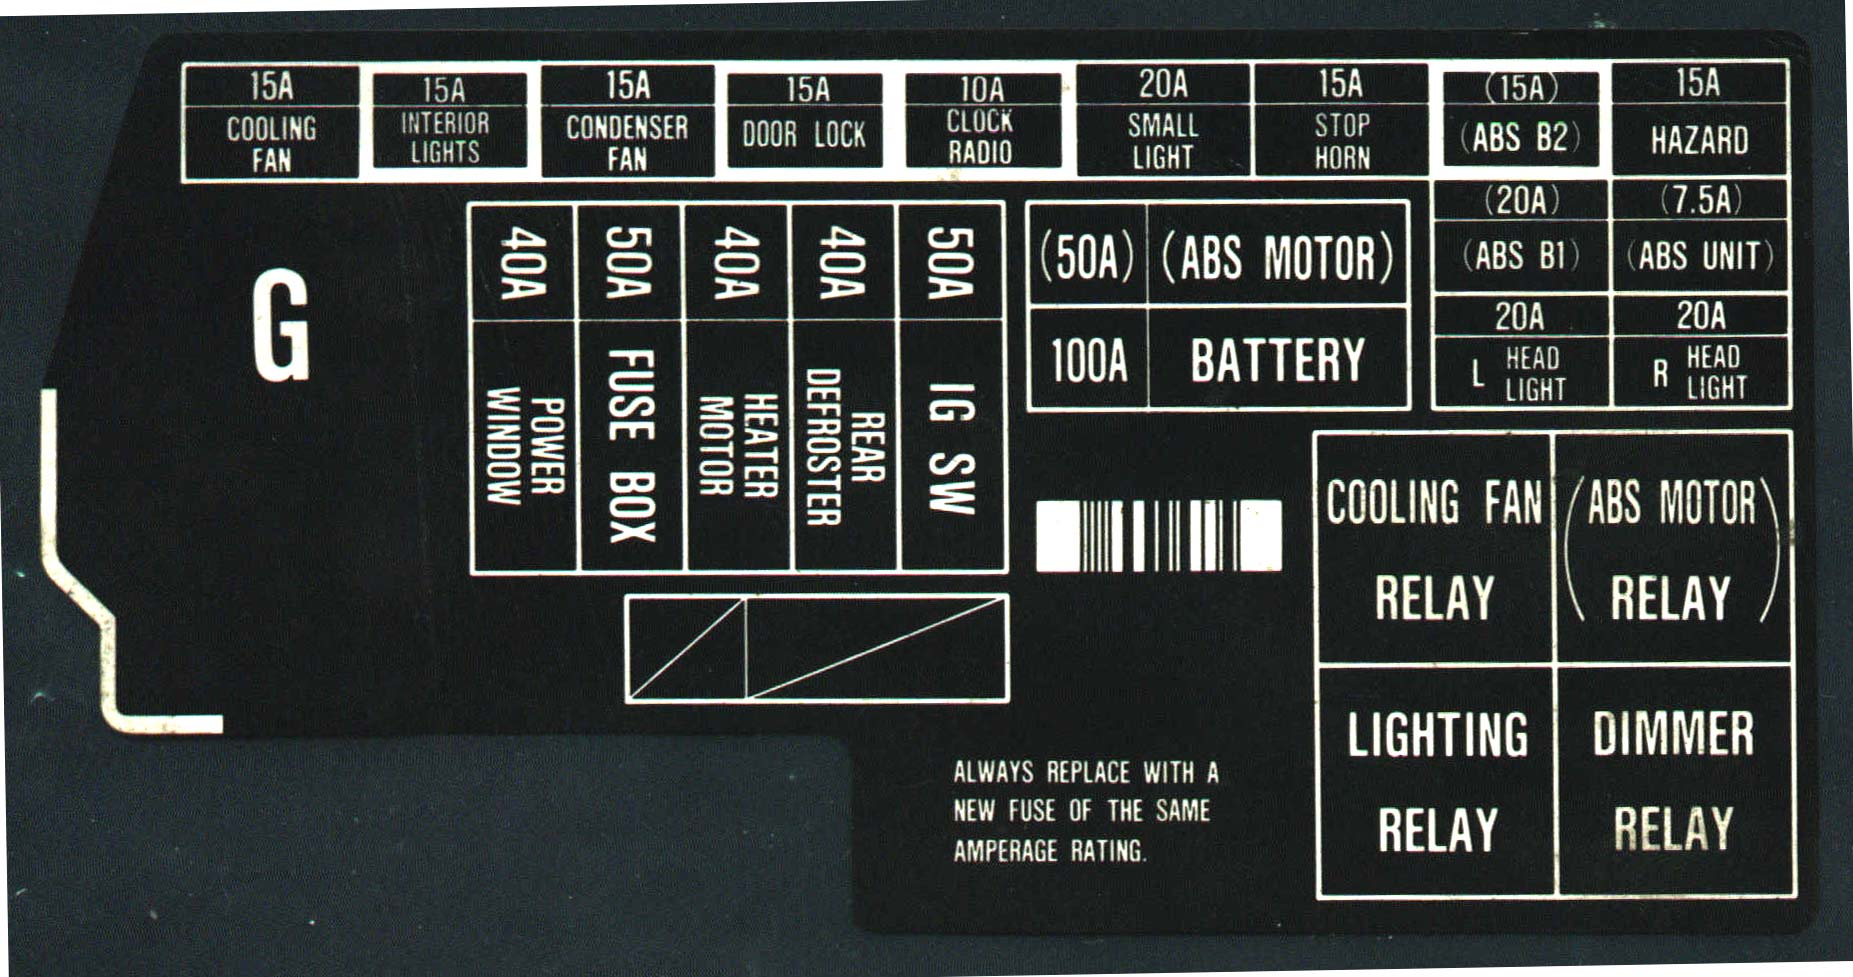 Prelude Fuse Diagram Auto Electrical Wiring 1989 Dodge D250 Box